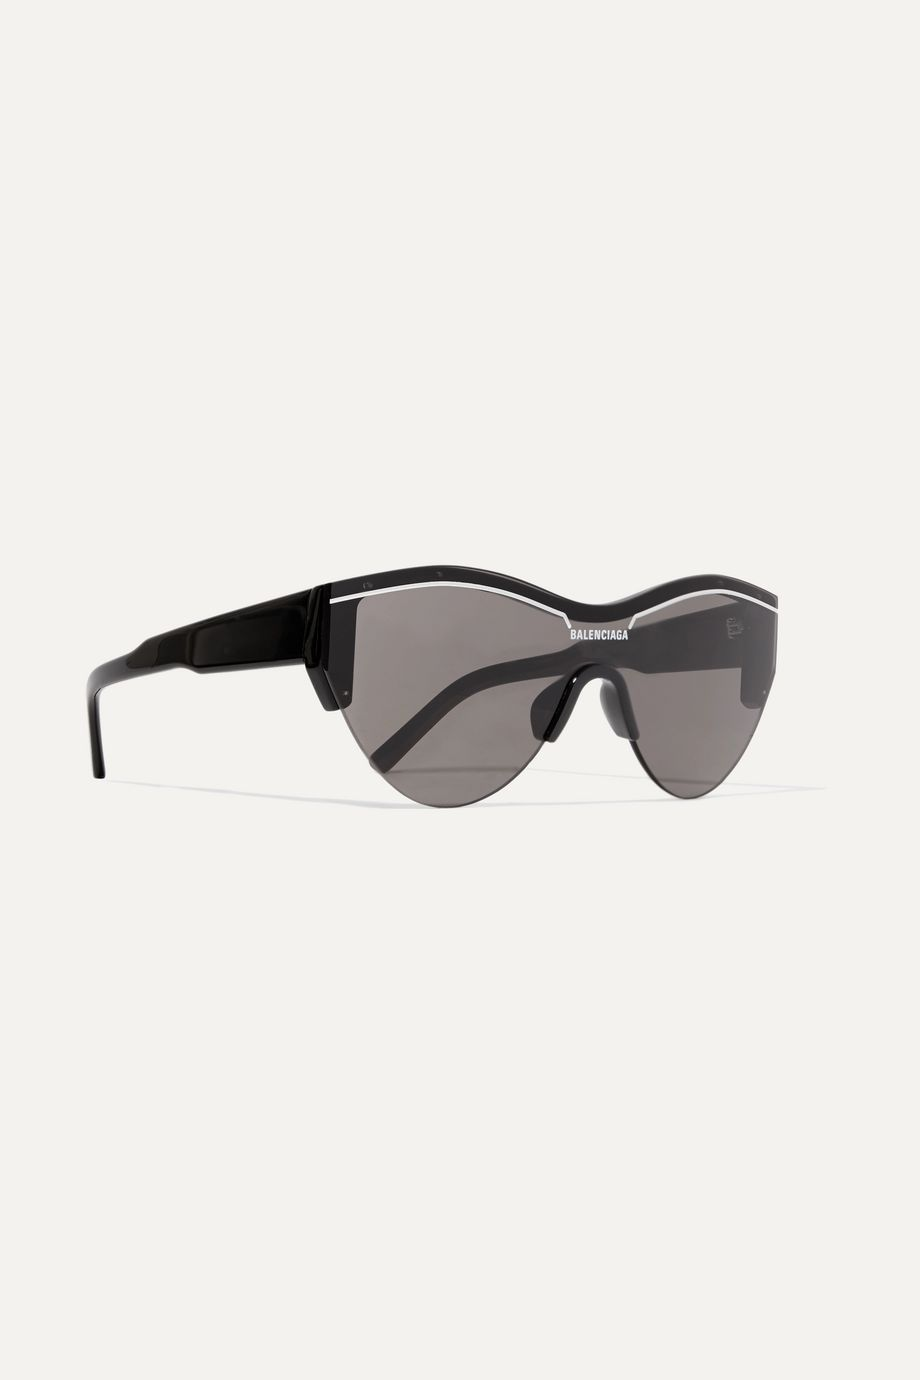 Balenciaga Ski cat-eye acetate sunglasses